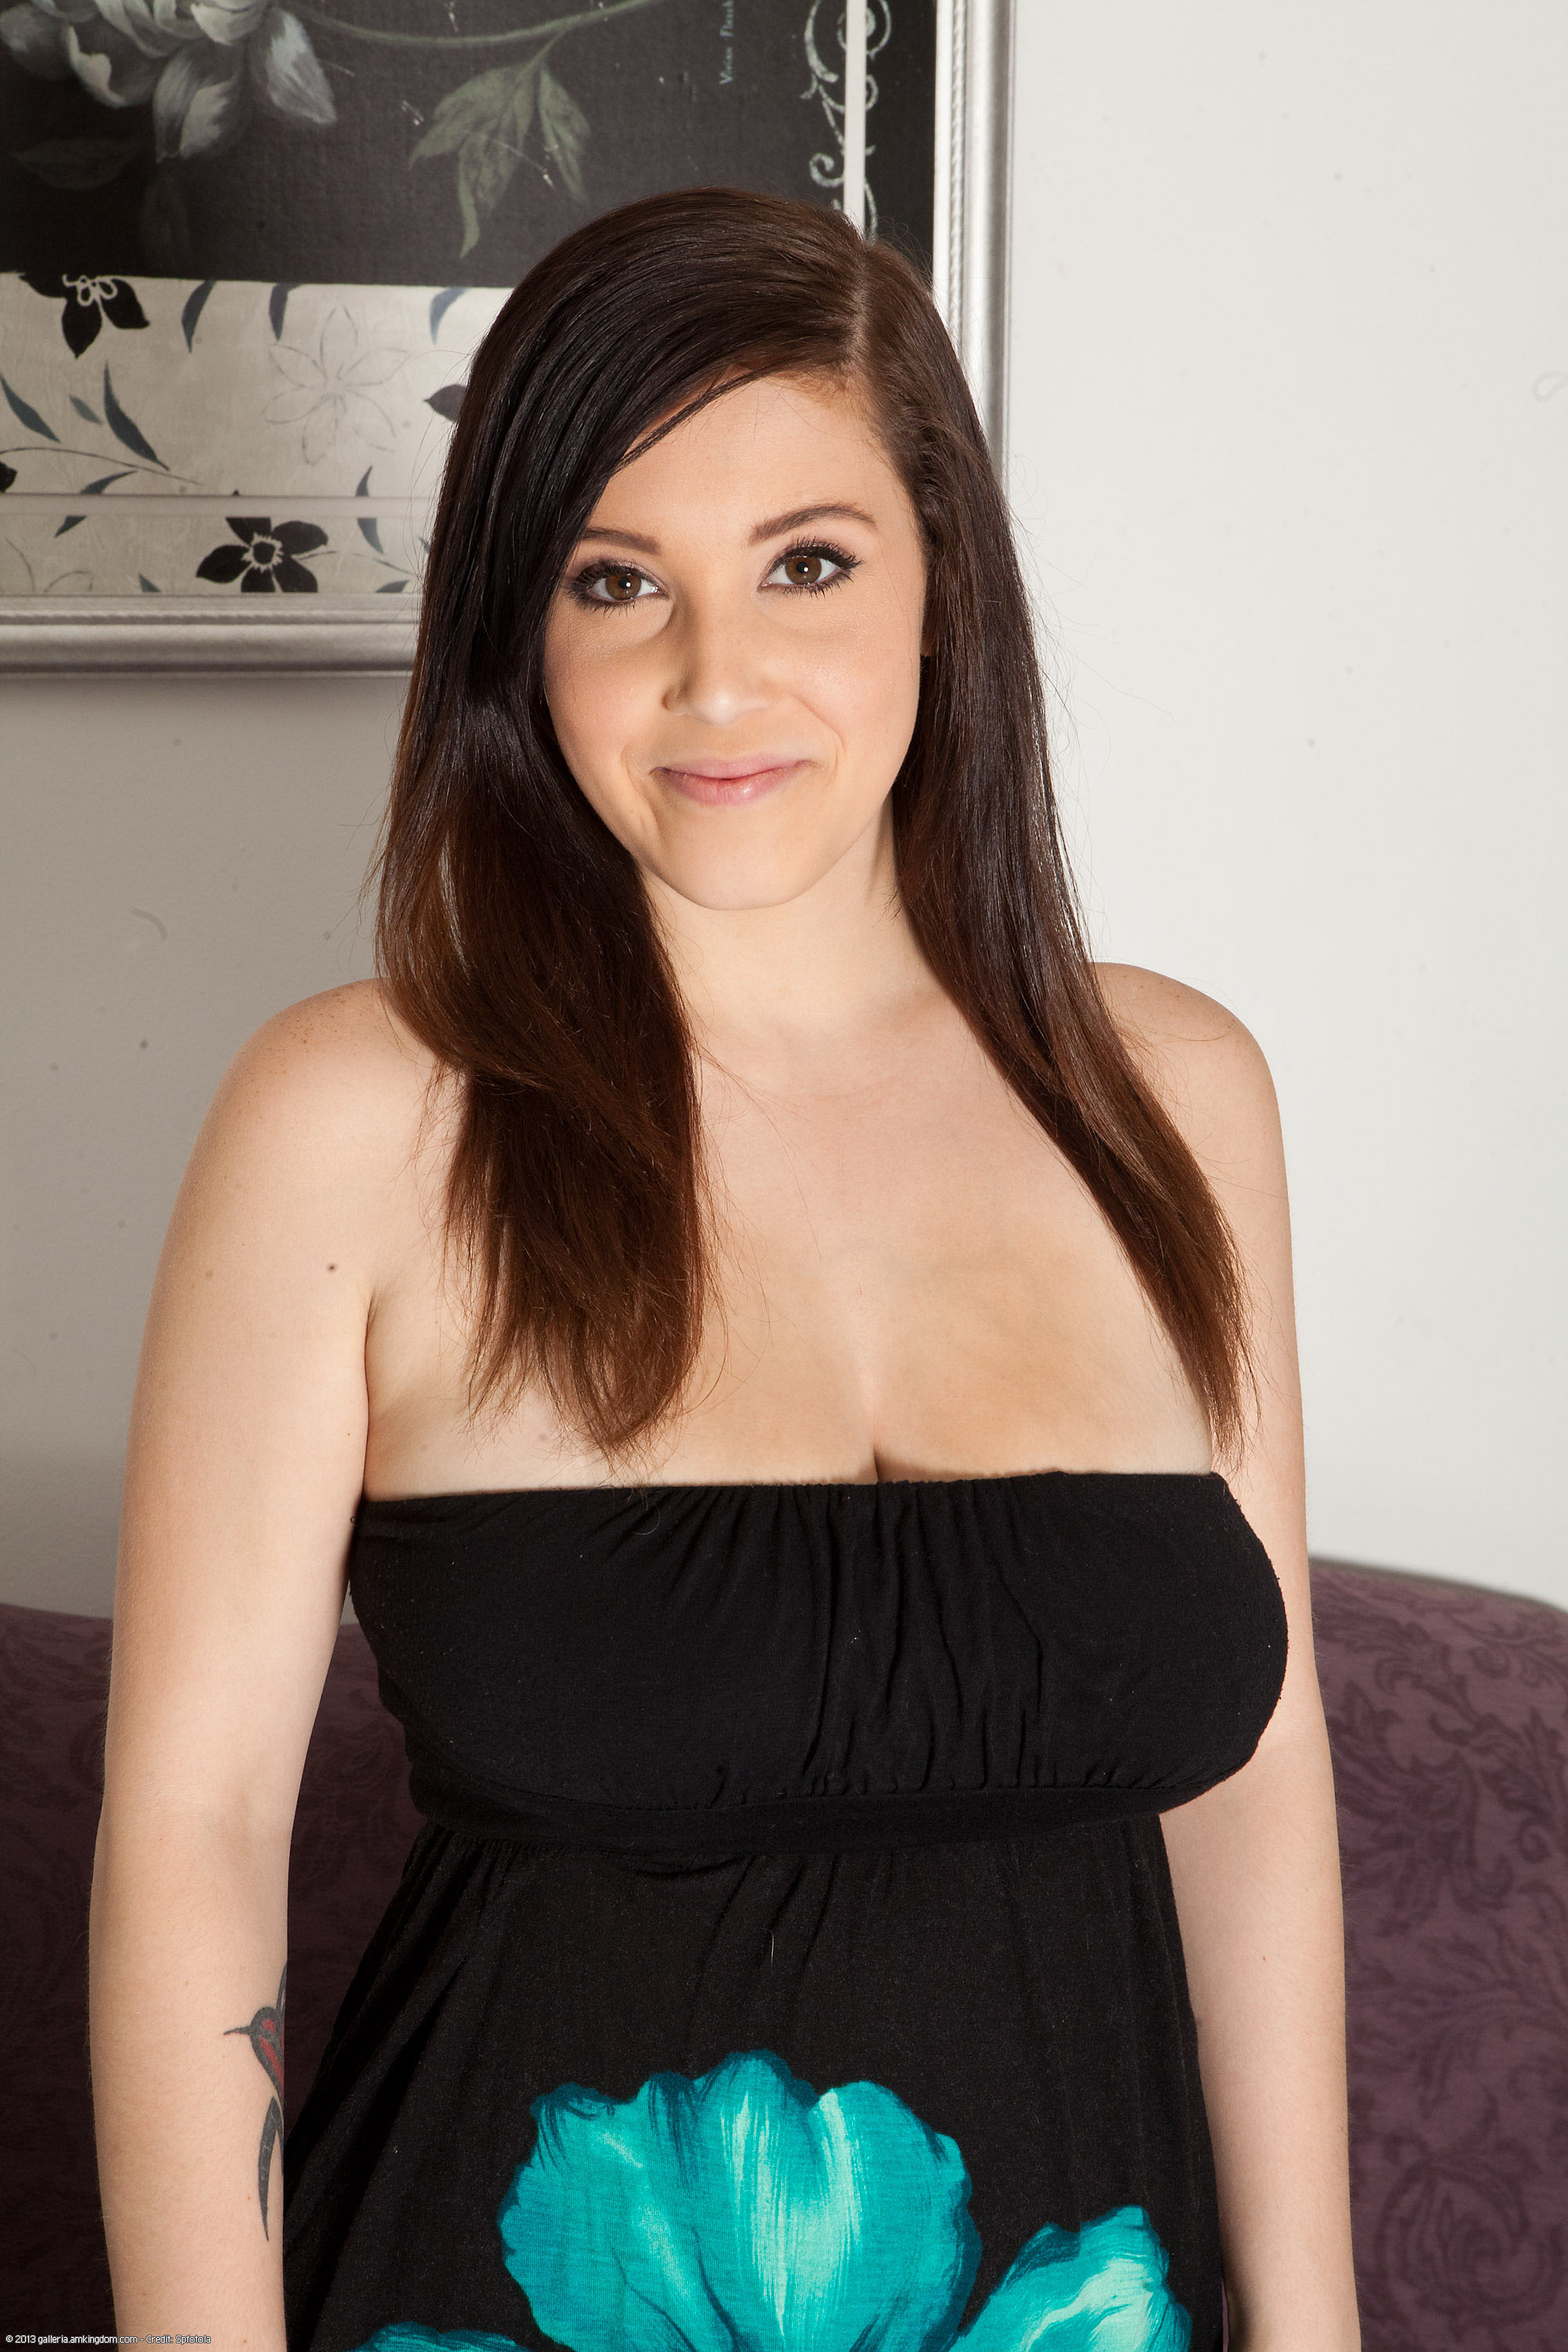 Noelle easton website